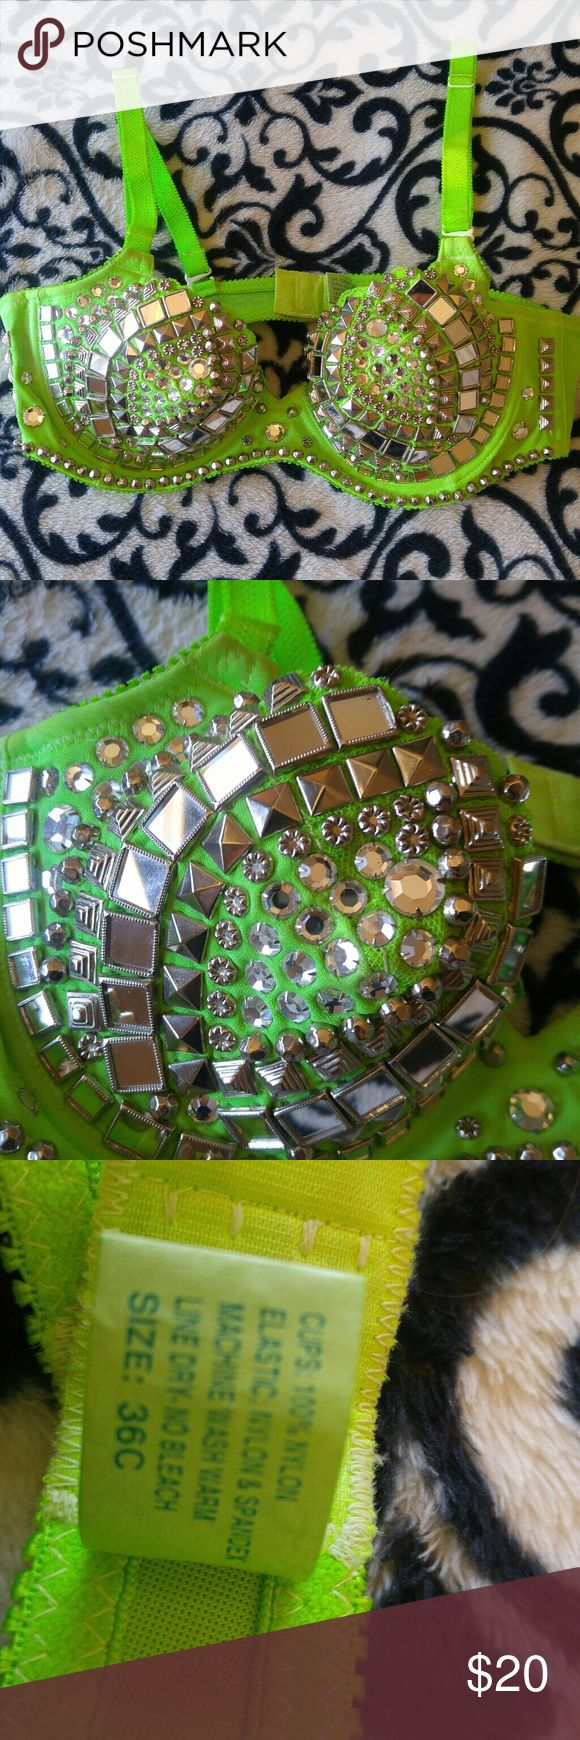 36 C Bling Bra Neon Green, bling, costume, lingerie, bra, top. Like new. Intimates & Sleepwear Bras